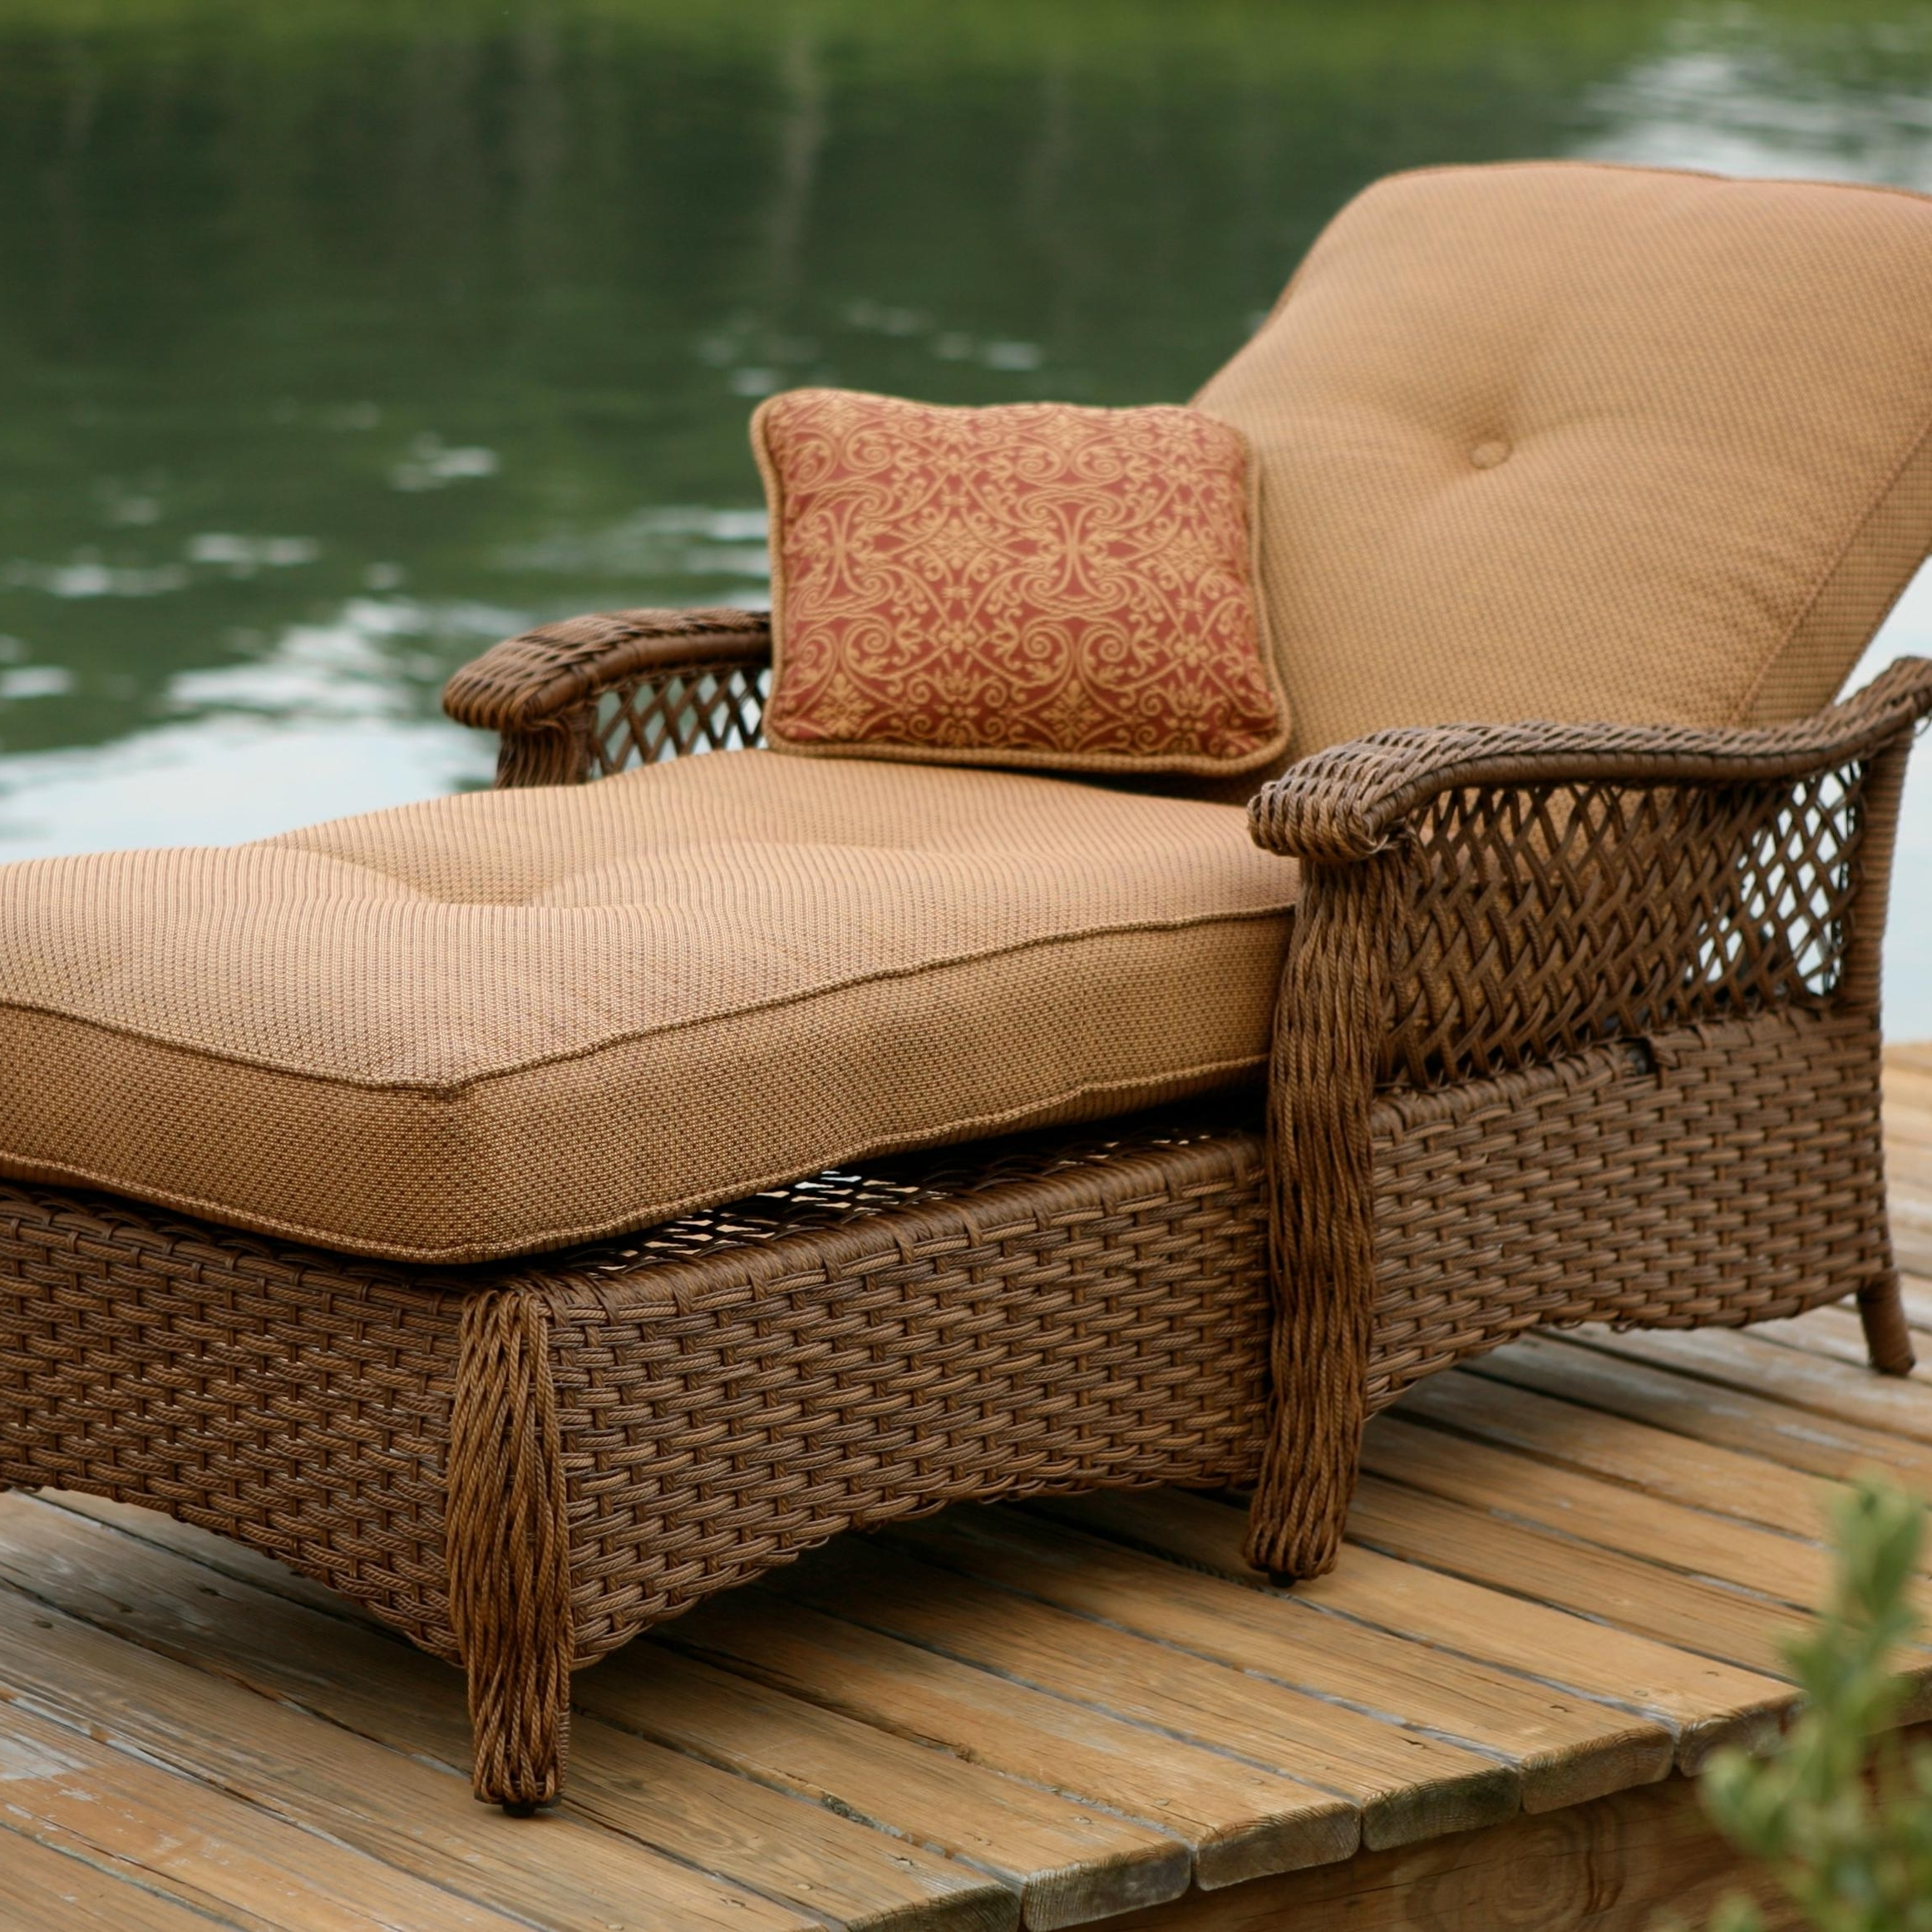 Woven Chaise Lounge Chair • Lounge Chairs Ideas With Most Popular Wicker Chaise Lounge Chairs For Outdoor (View 2 of 15)